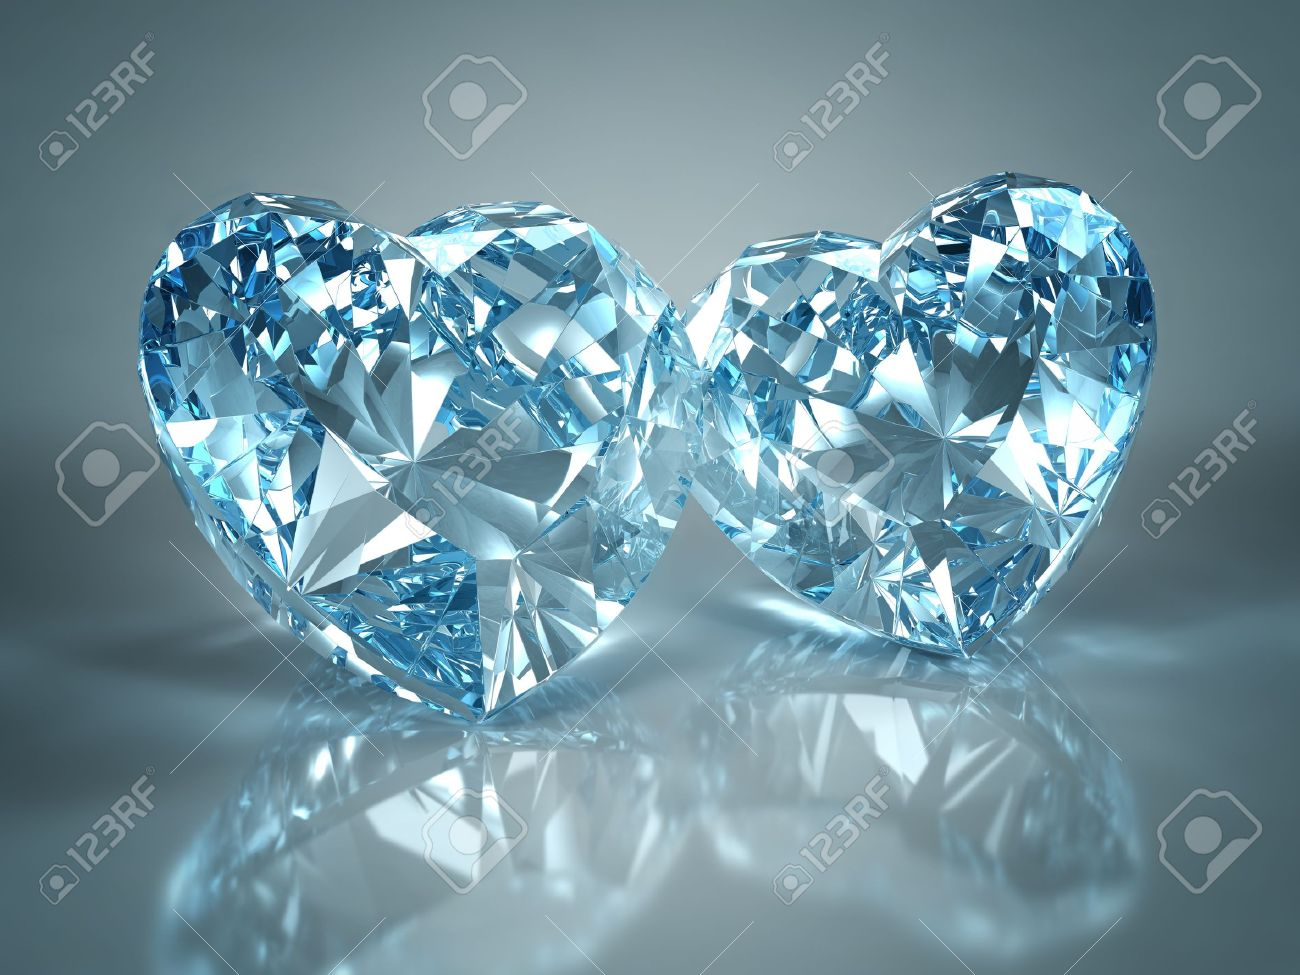 Diamonds jewel heart isolated on light blue background. Beautiful sparkling diamonds on a light reflective surface. High quality 3d render with HDRI lighting and ray traced textures. Stock Photo - 8612056